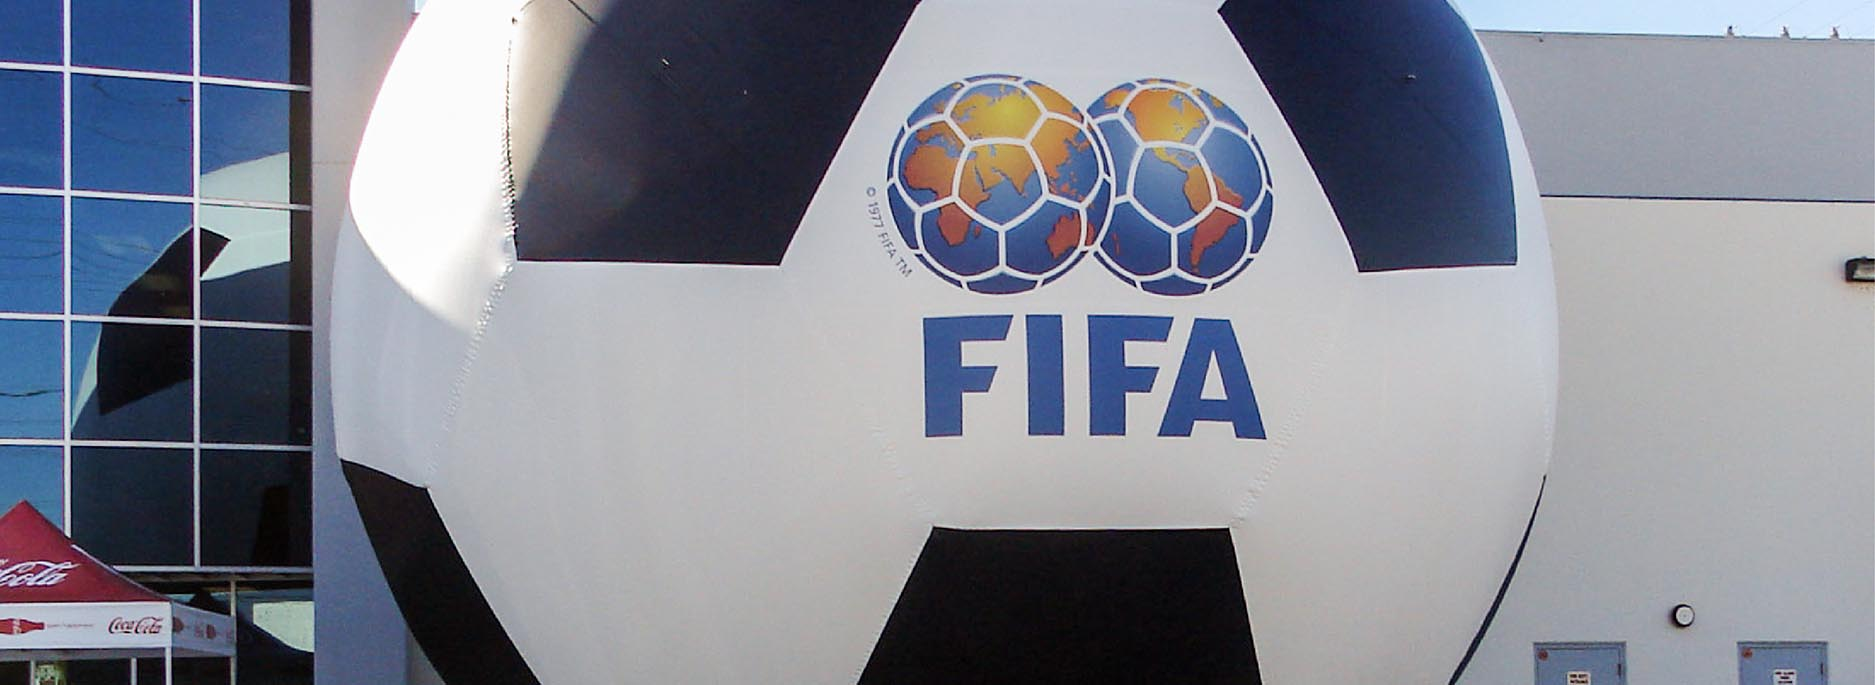 Inflatable FIFA soccer ball replica